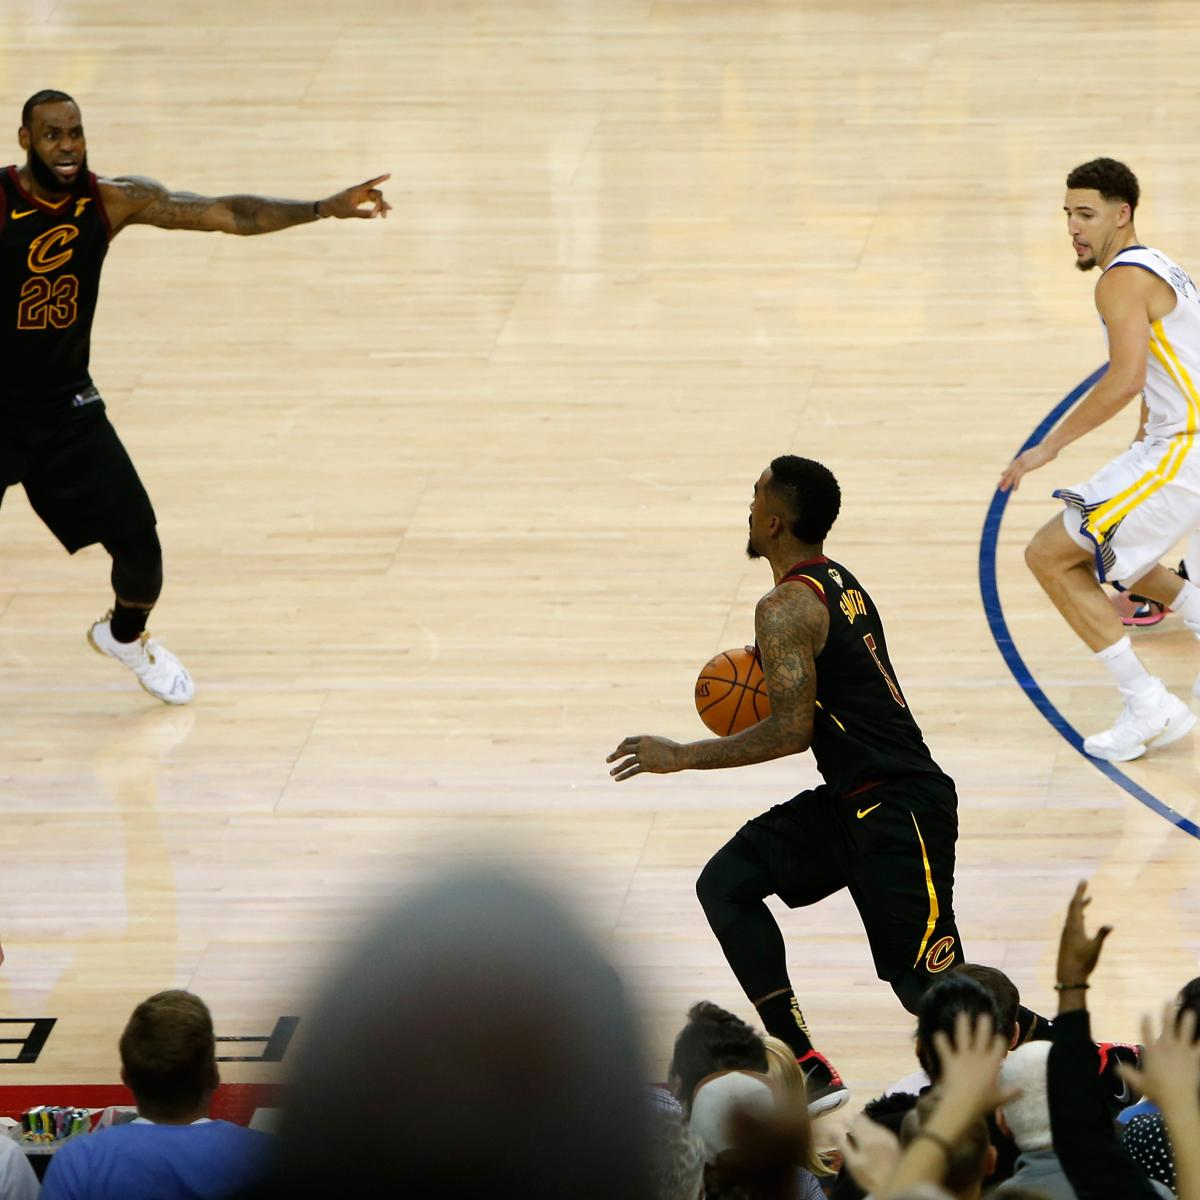 LeBron James' Jersey from NBA Finals Game 1 Sold for More Than $100k at Auction